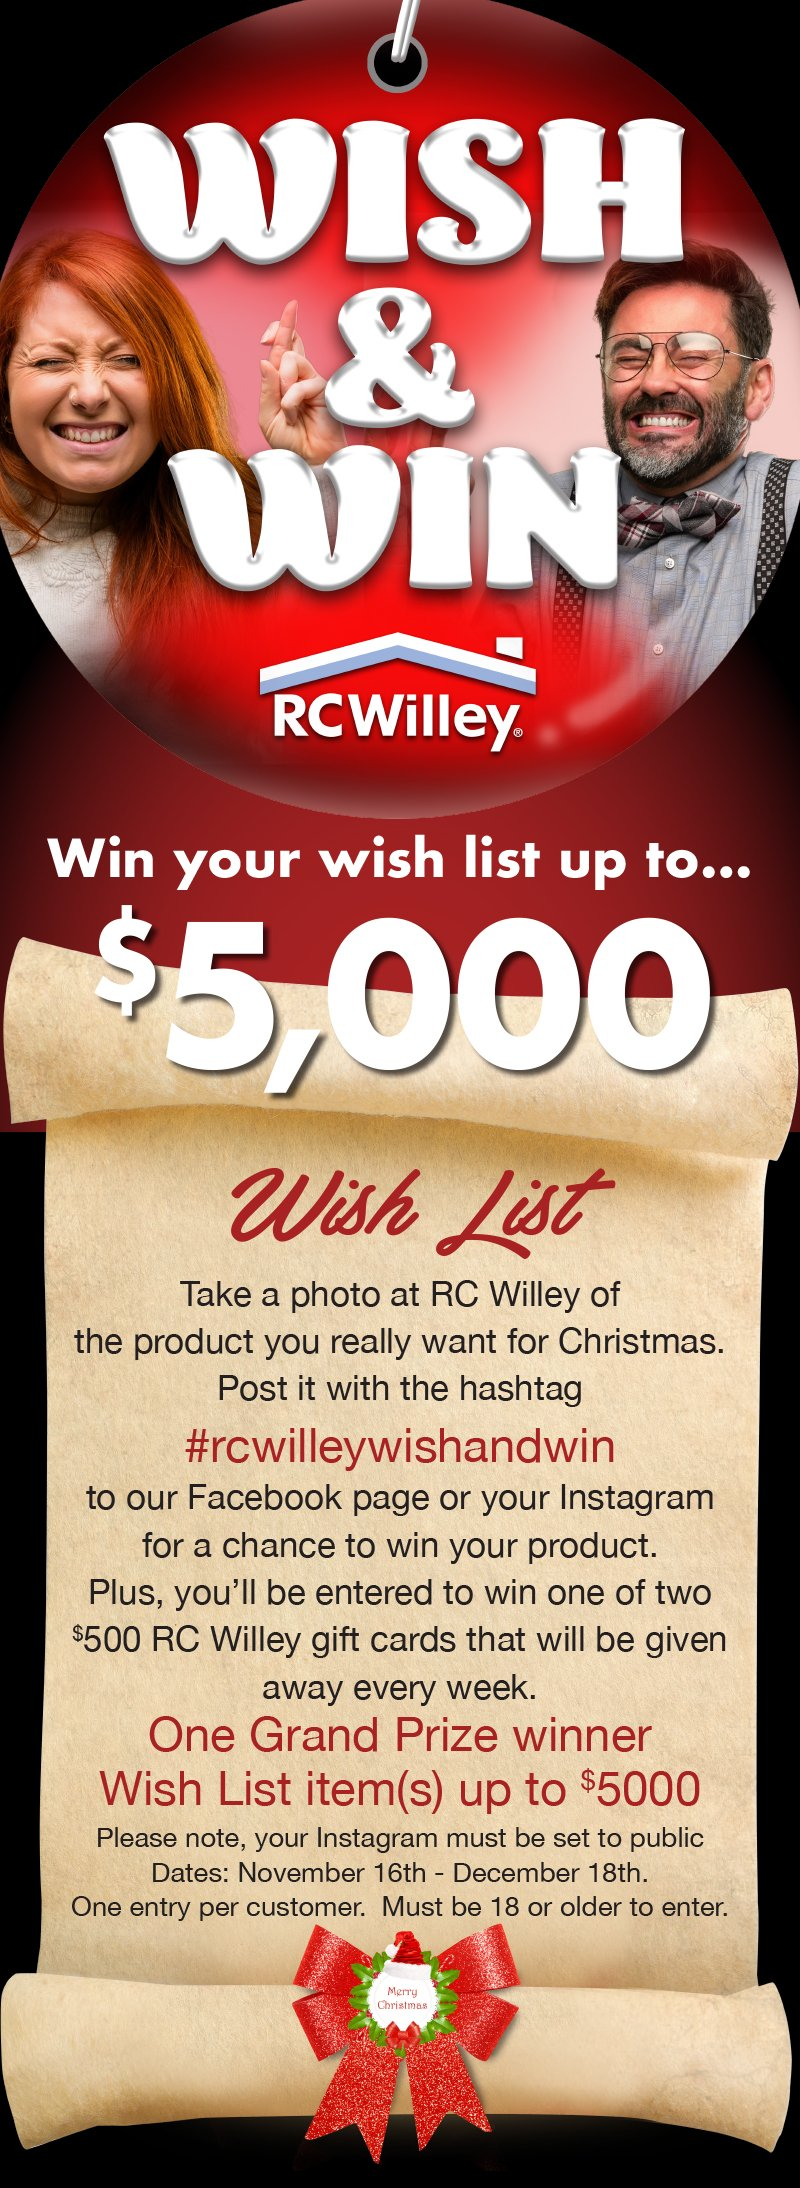 RC Willey's Wish and Win. You could win your wish list up to $5,000. Take a photo at RC Willey of the product you really want for Christmas. Post it with the hashtag #rcwilleywishandwin to our Facebook or your Instagram for a chance to win your product. Plus, you'll be entered to win one of two $500 RC Willey gift cards that will be given away every week. One Grand Prize winner Wish List item(s) up to $5000. Please note, your Instagram must be set to public.Dates: November 16th - December 18th. One entry per customer. Must be 18 or older to enter.